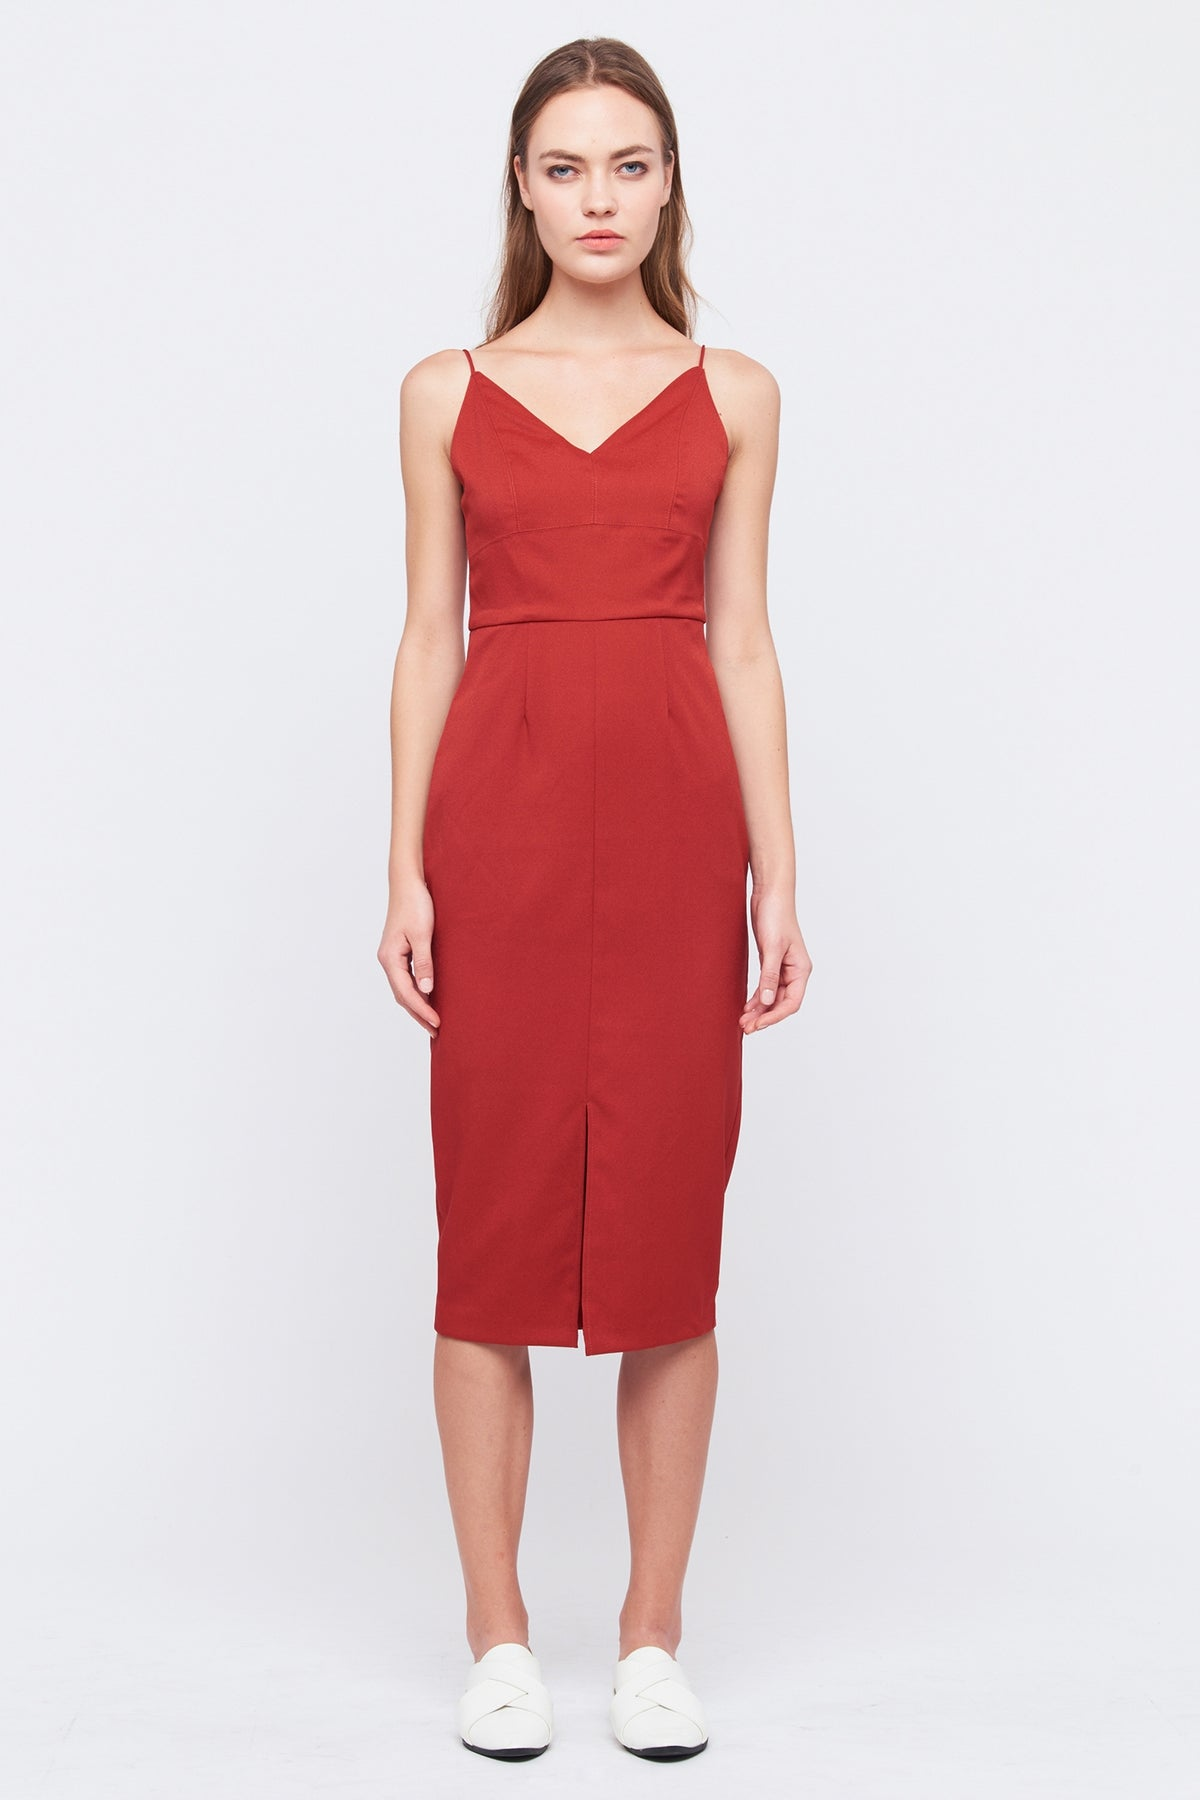 Sleeveless Tailored Dress In Red